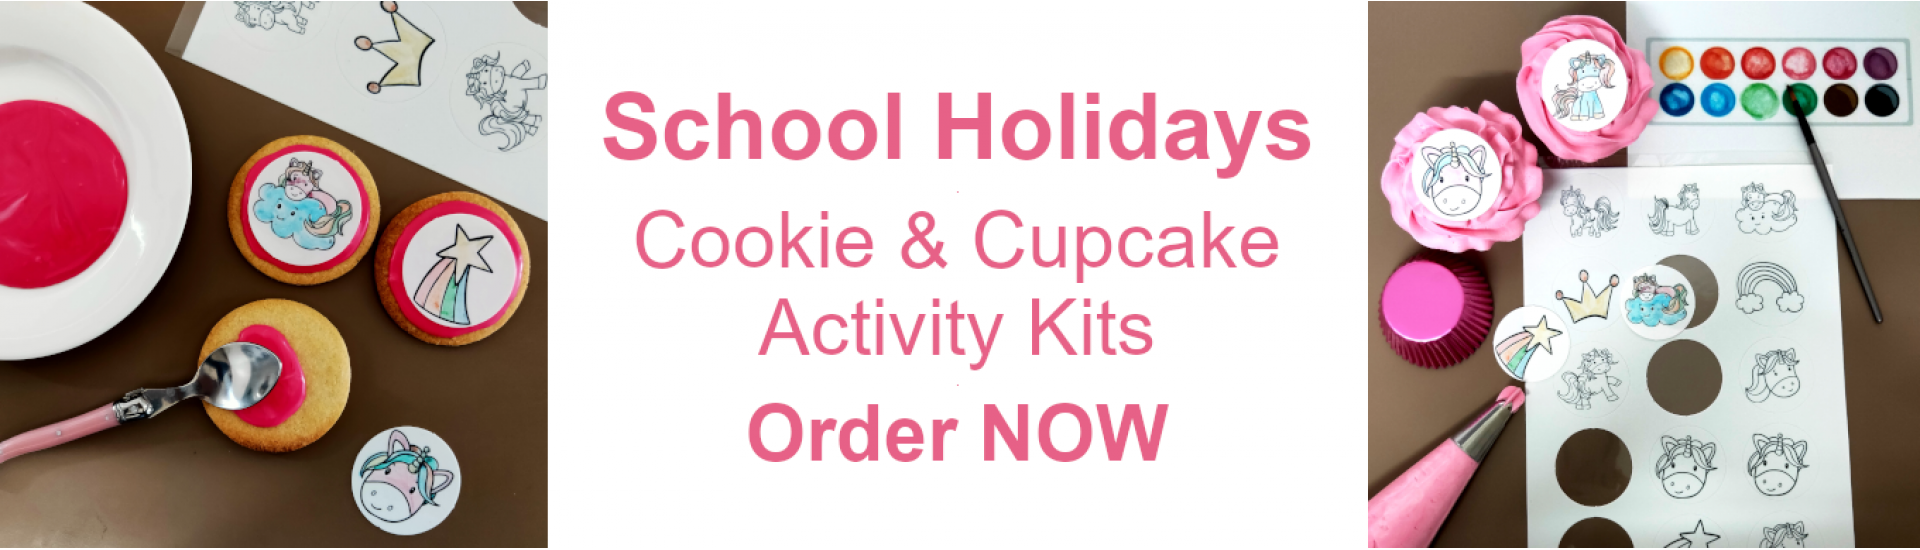 School Holiday Kits